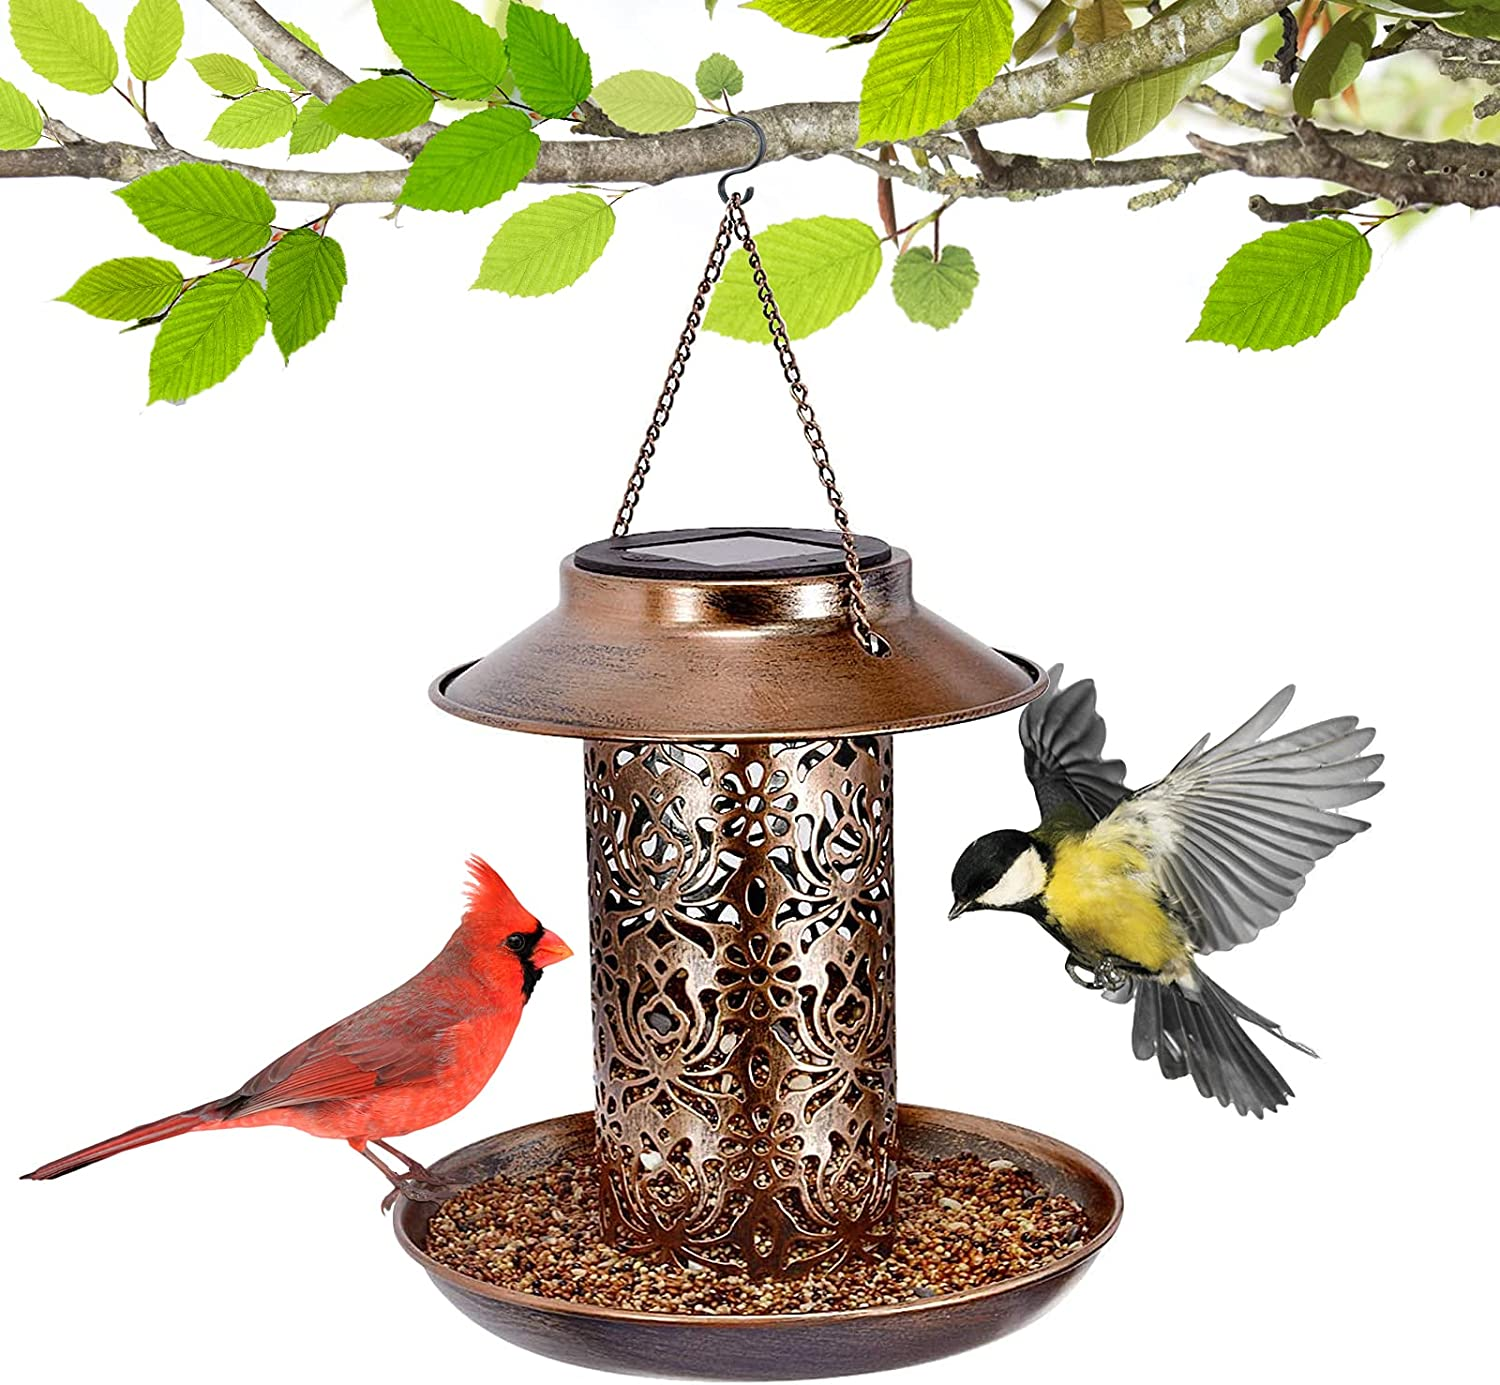 Metal Tube Panorama Top-Fill Wild Bird Feeder Solar Powered, Squirrel Proof, Hanging Bird Feeder Waterproof, Easy to Clean and Fill, Hummingbird Feeder for Outside, Yard Garden Decor